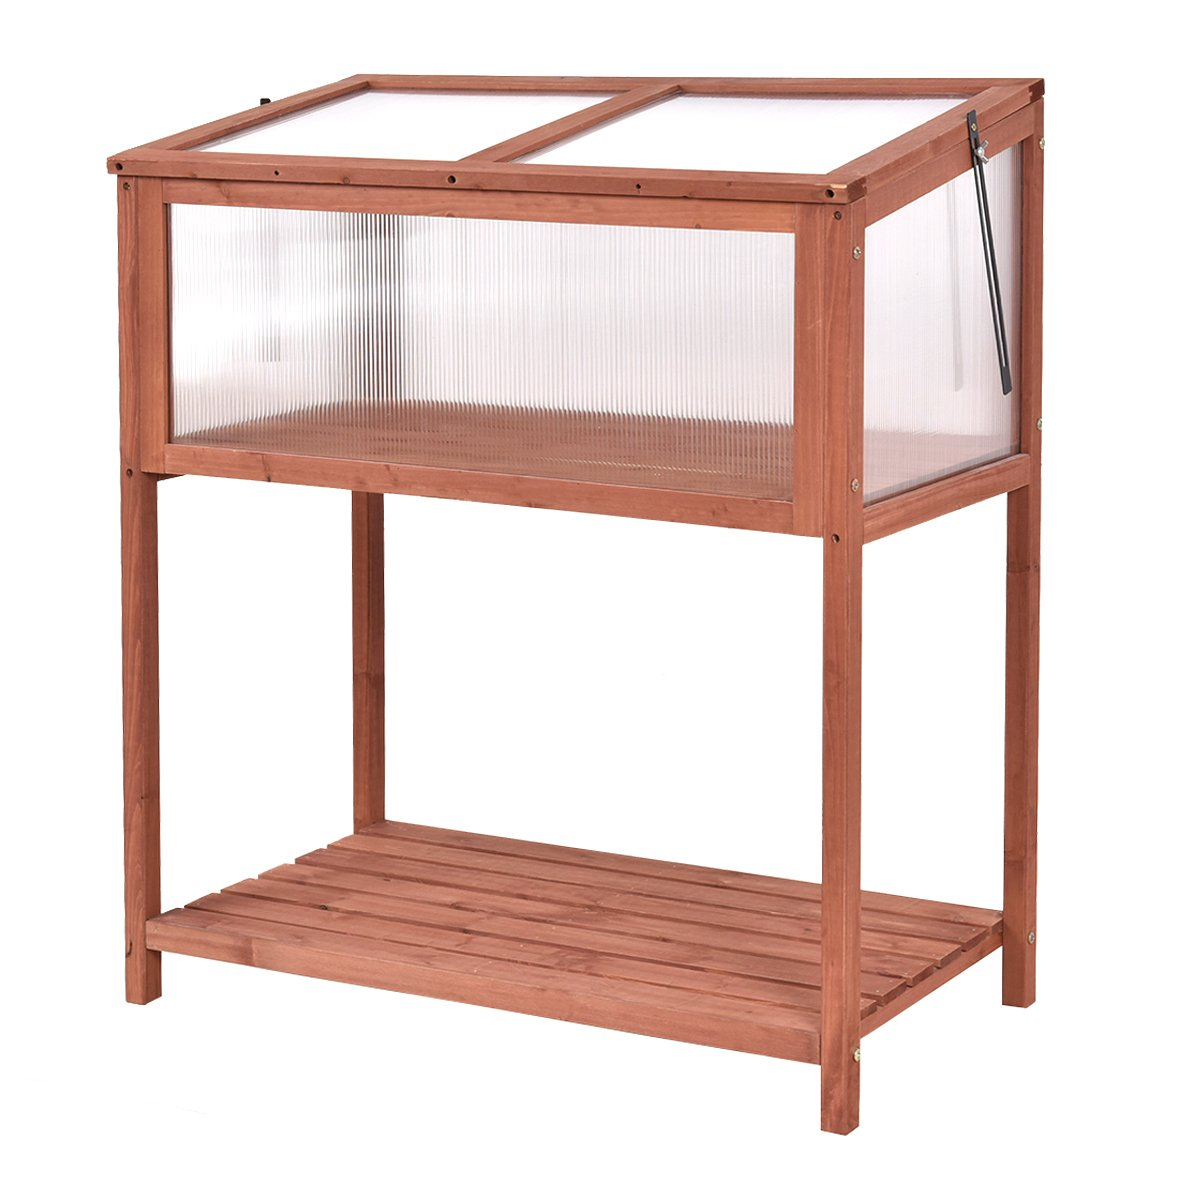 Giantex Garden Portable Wooden Cold Frame Greenhouse Raised Flower Planter Protection (35.4''X19.3''X40.5'') by Giantex (Image #1)